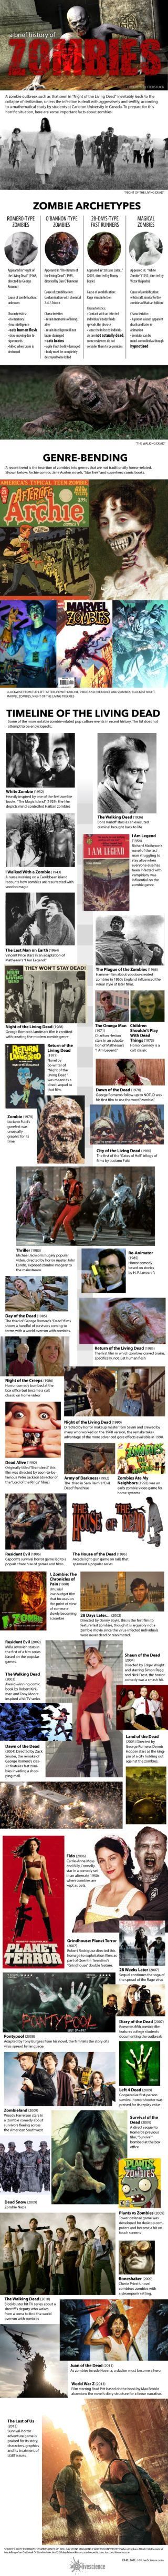 Timeline of zombies in pop culture